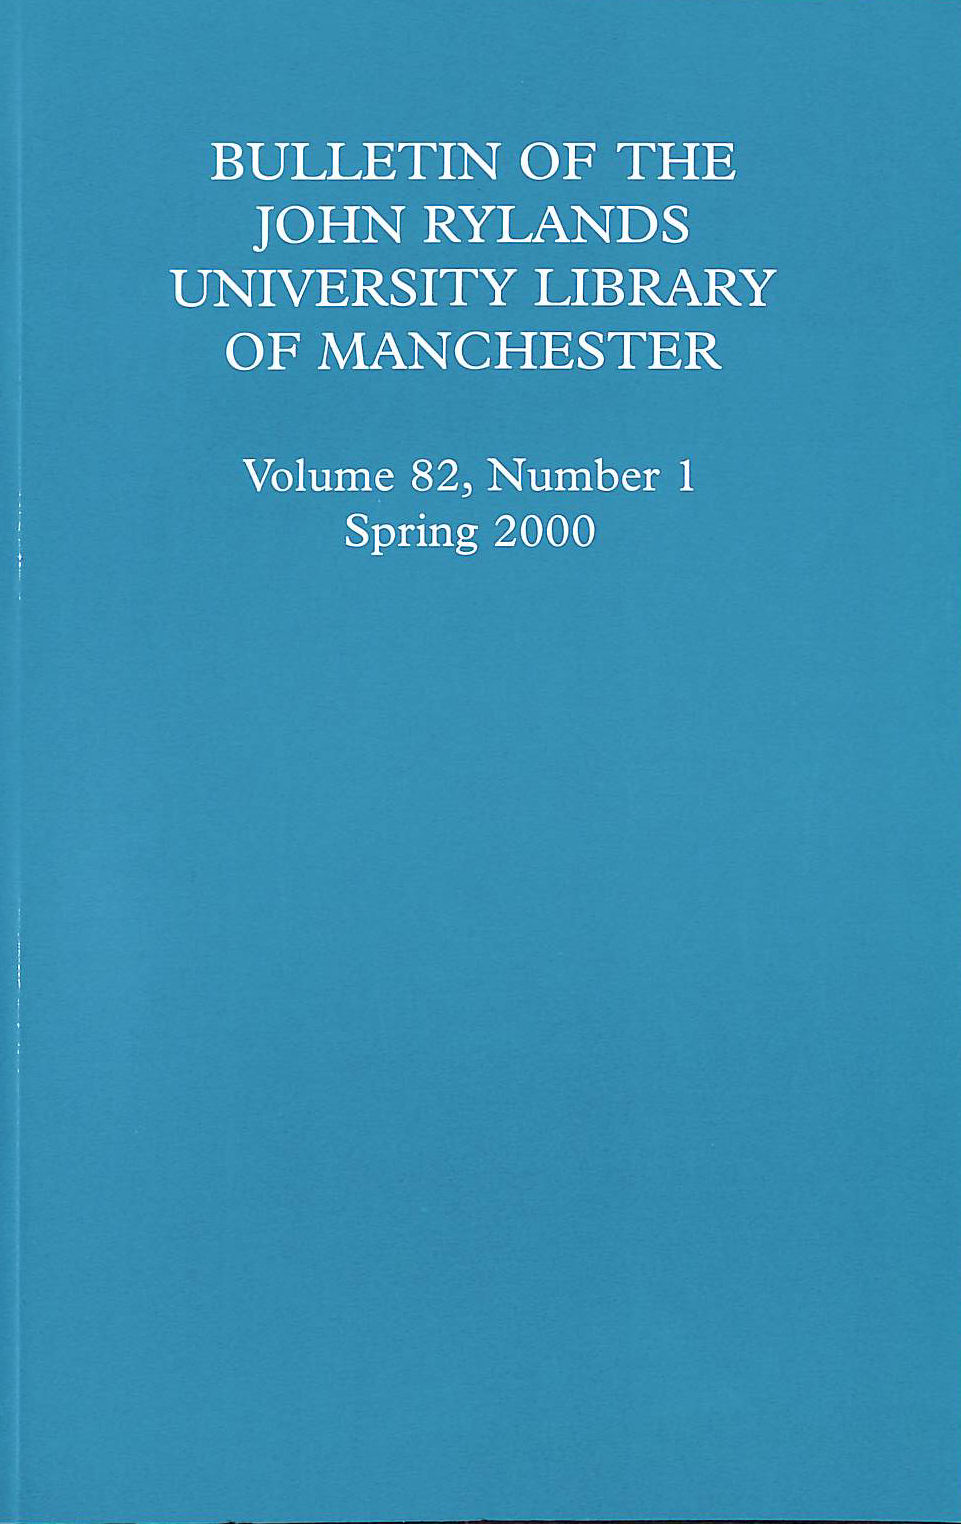 Image for Bulletin Of The John Rylands University Library Of Manchester Volume 82, Number 1 Spring 2000